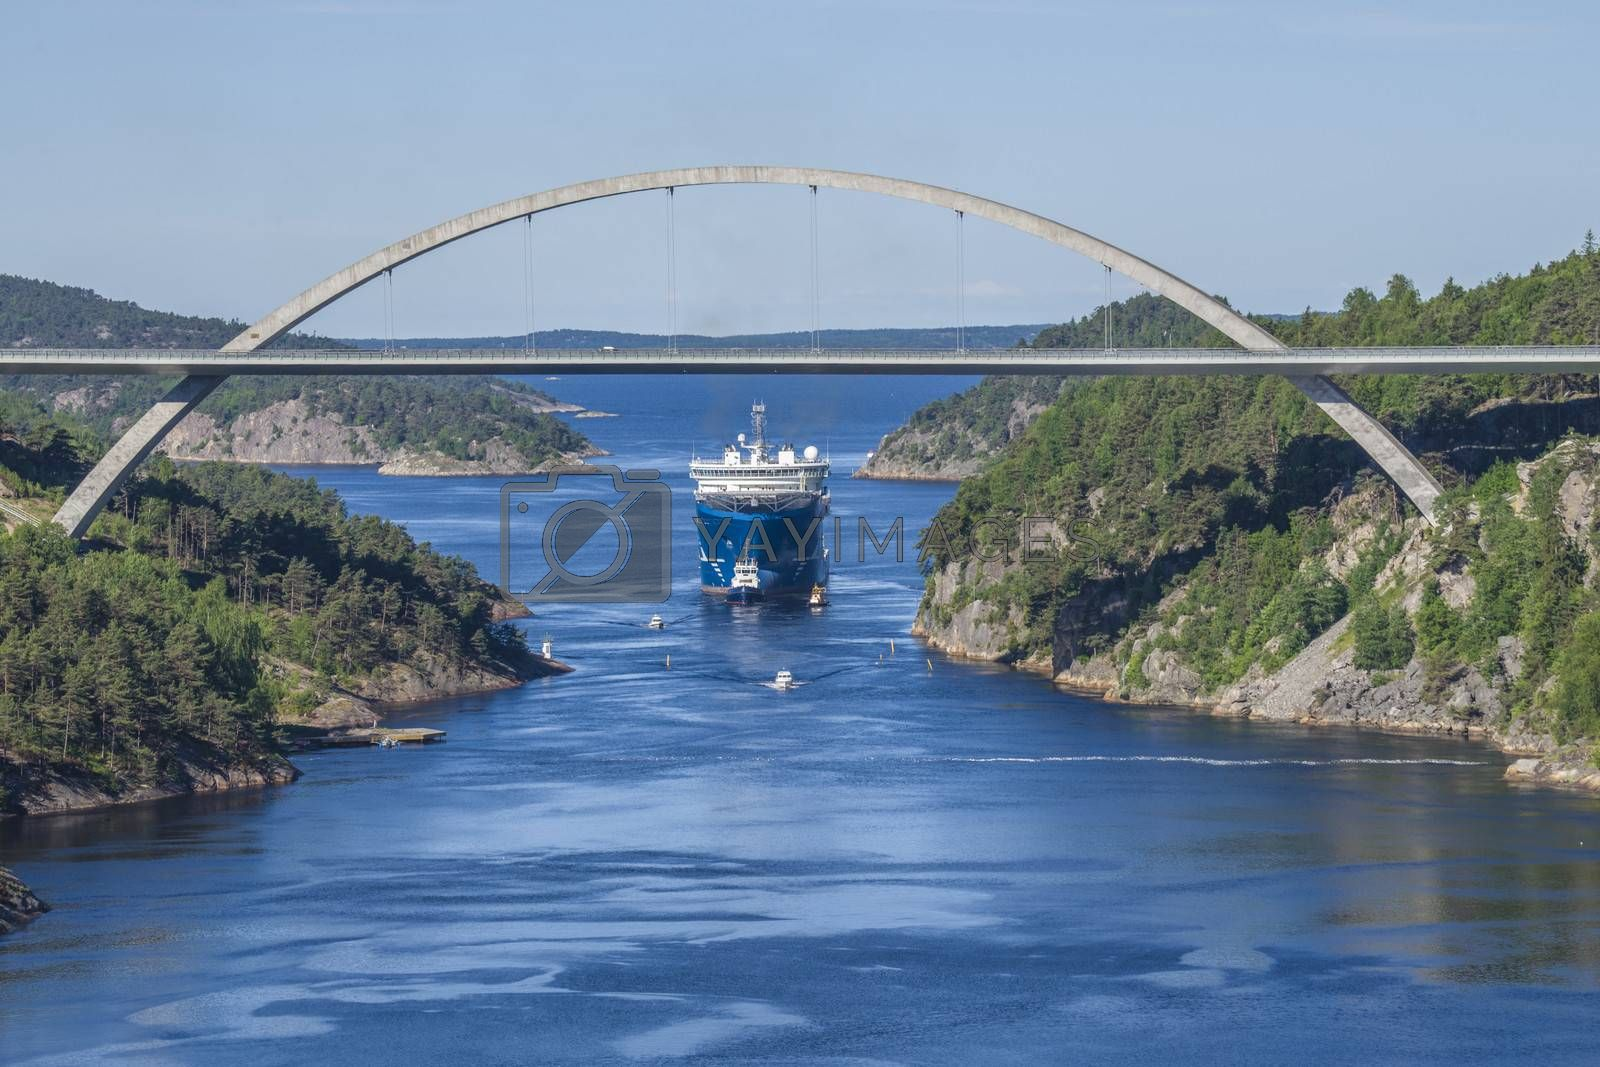 Tug Achilles and tug Belos have started towing the MV North Sea Giant through Ringdalsfjord in Halden, Norway.